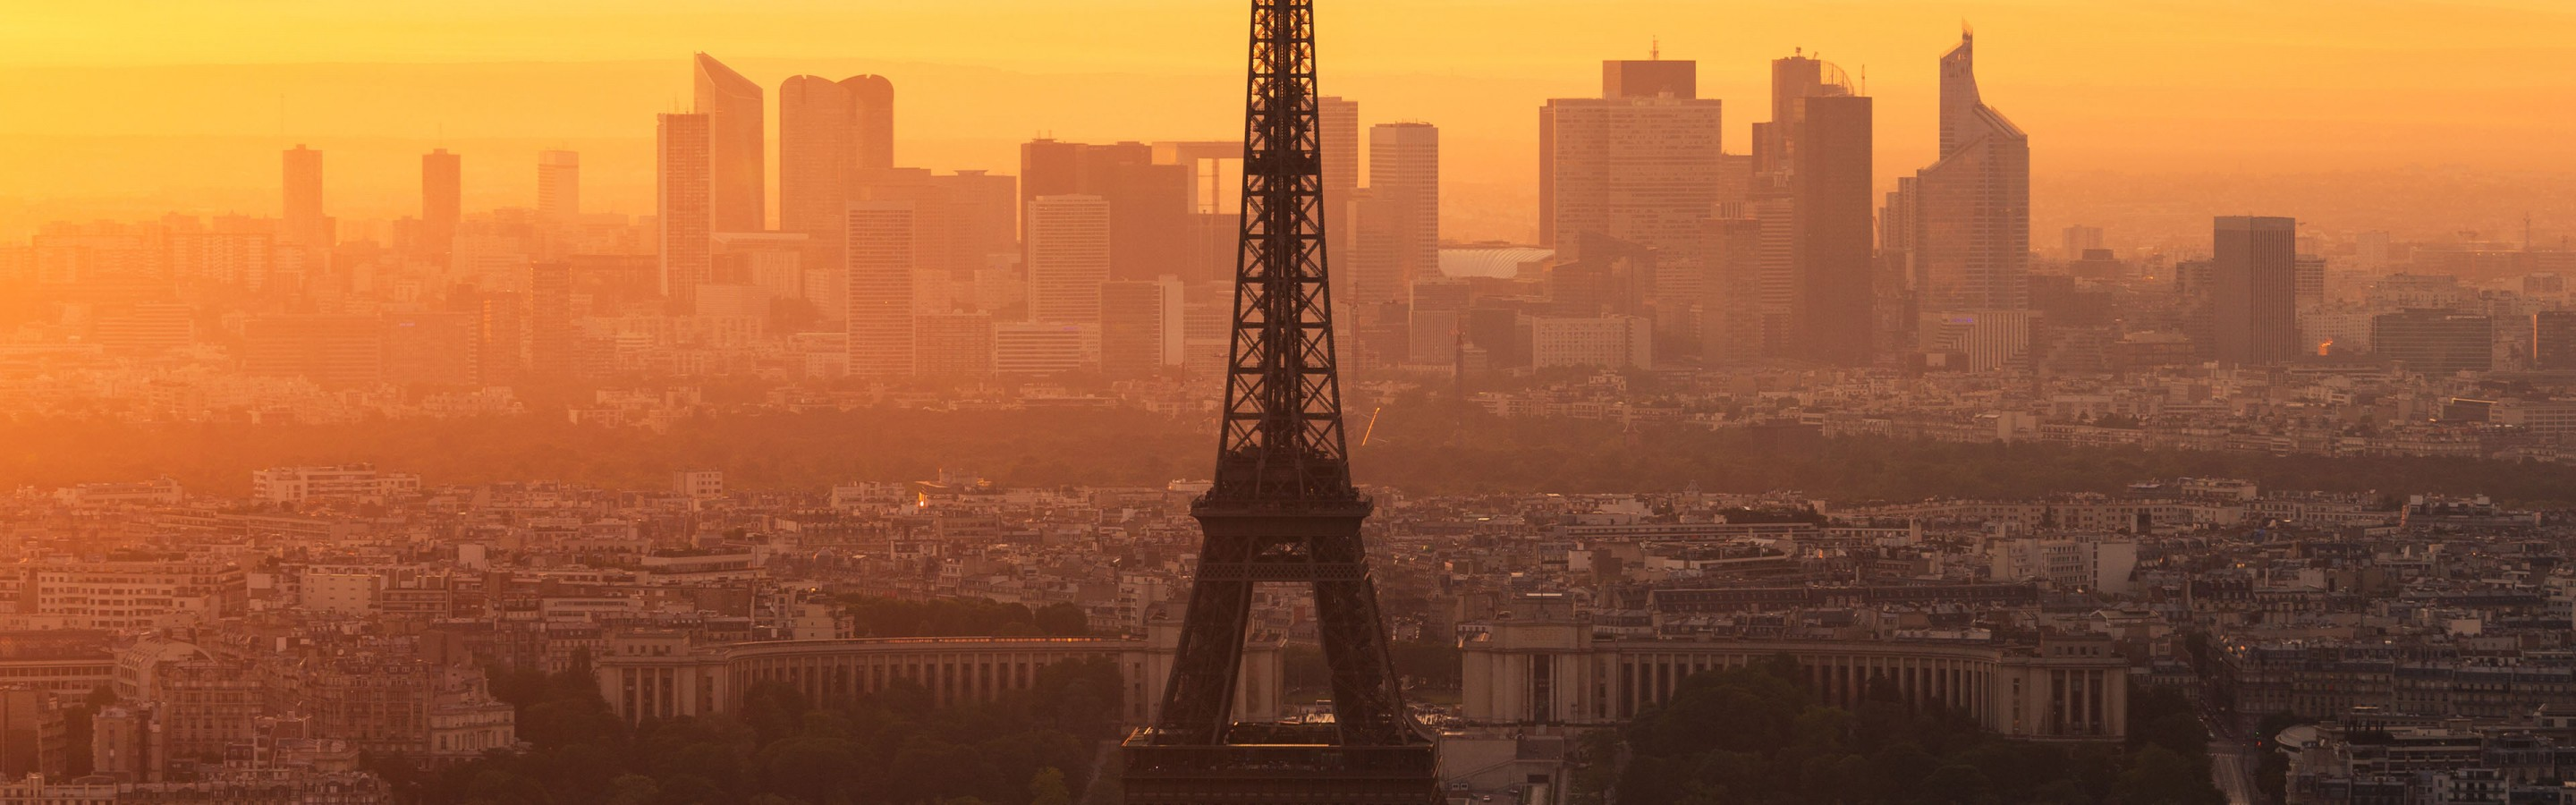 Paris morning 2880x900